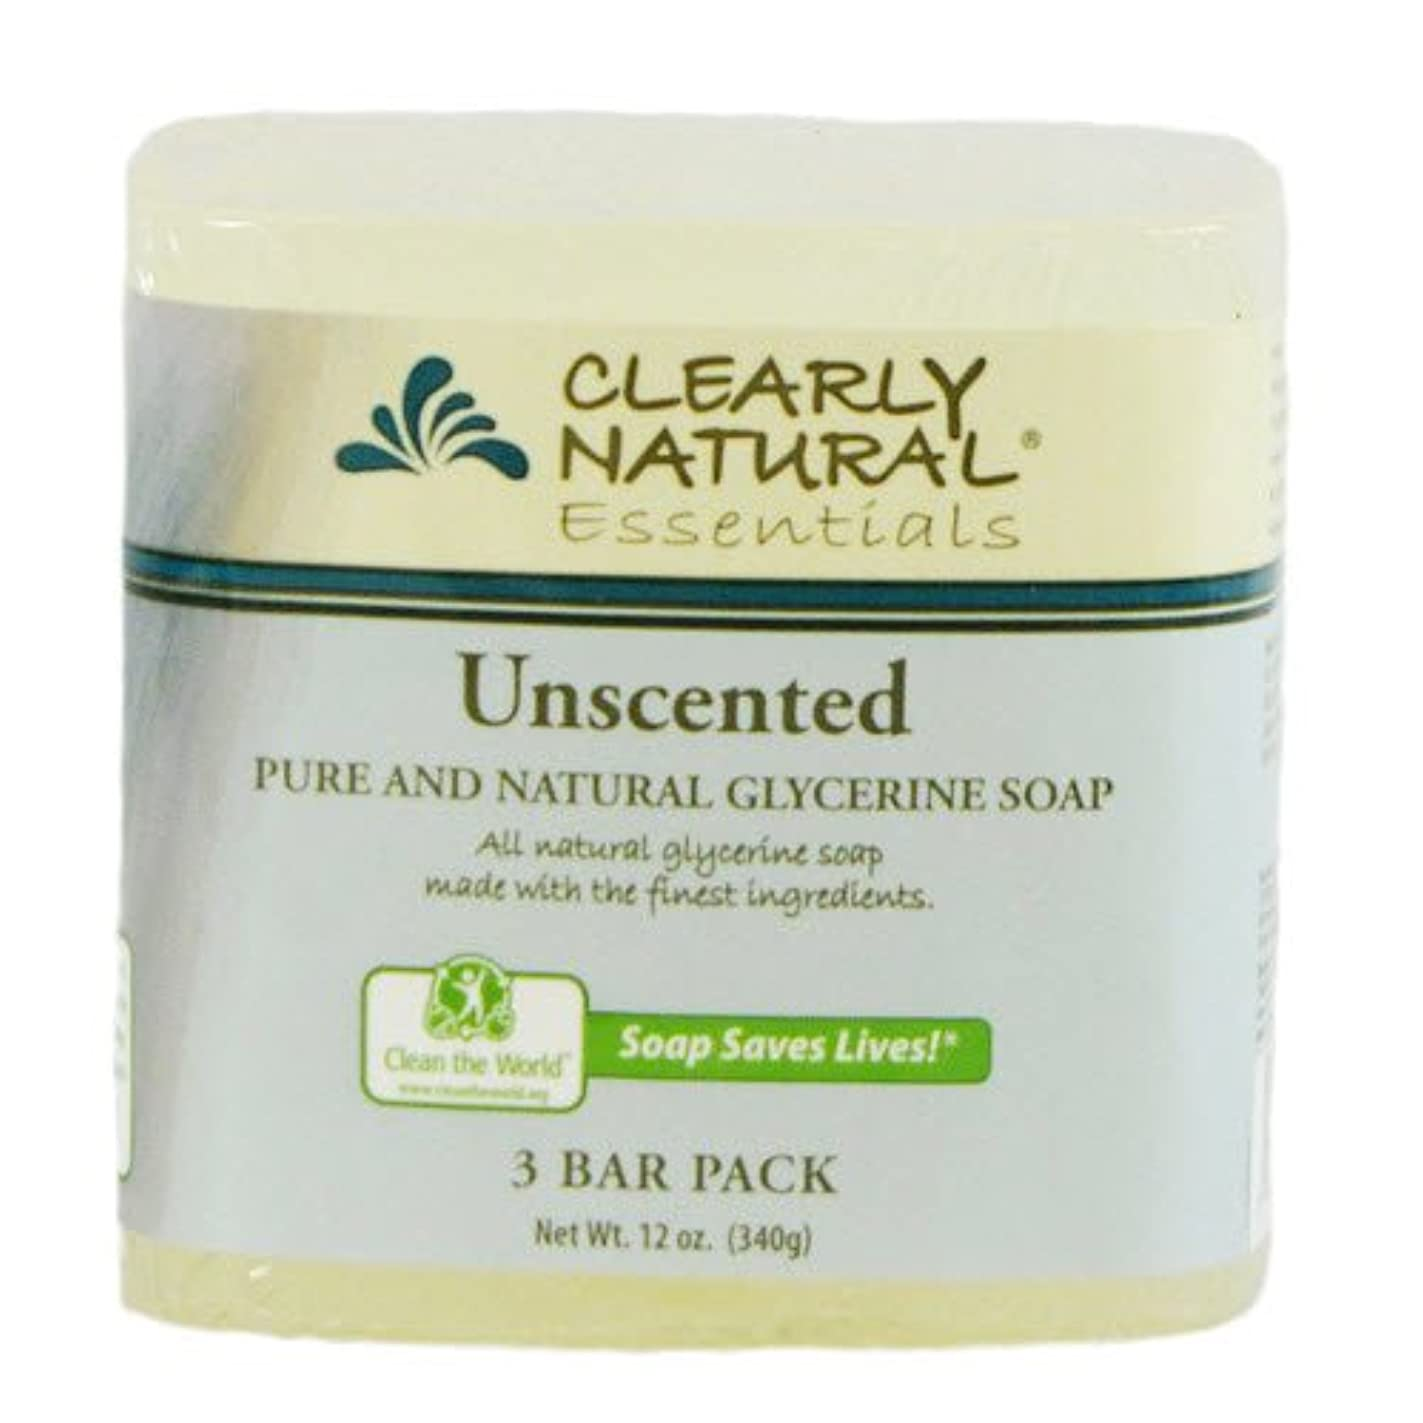 先祖繊毛合体Clearly Natural, Pure and Natural Glycerine Soap, Unscented, 3 Bar Pack, 4 oz Each